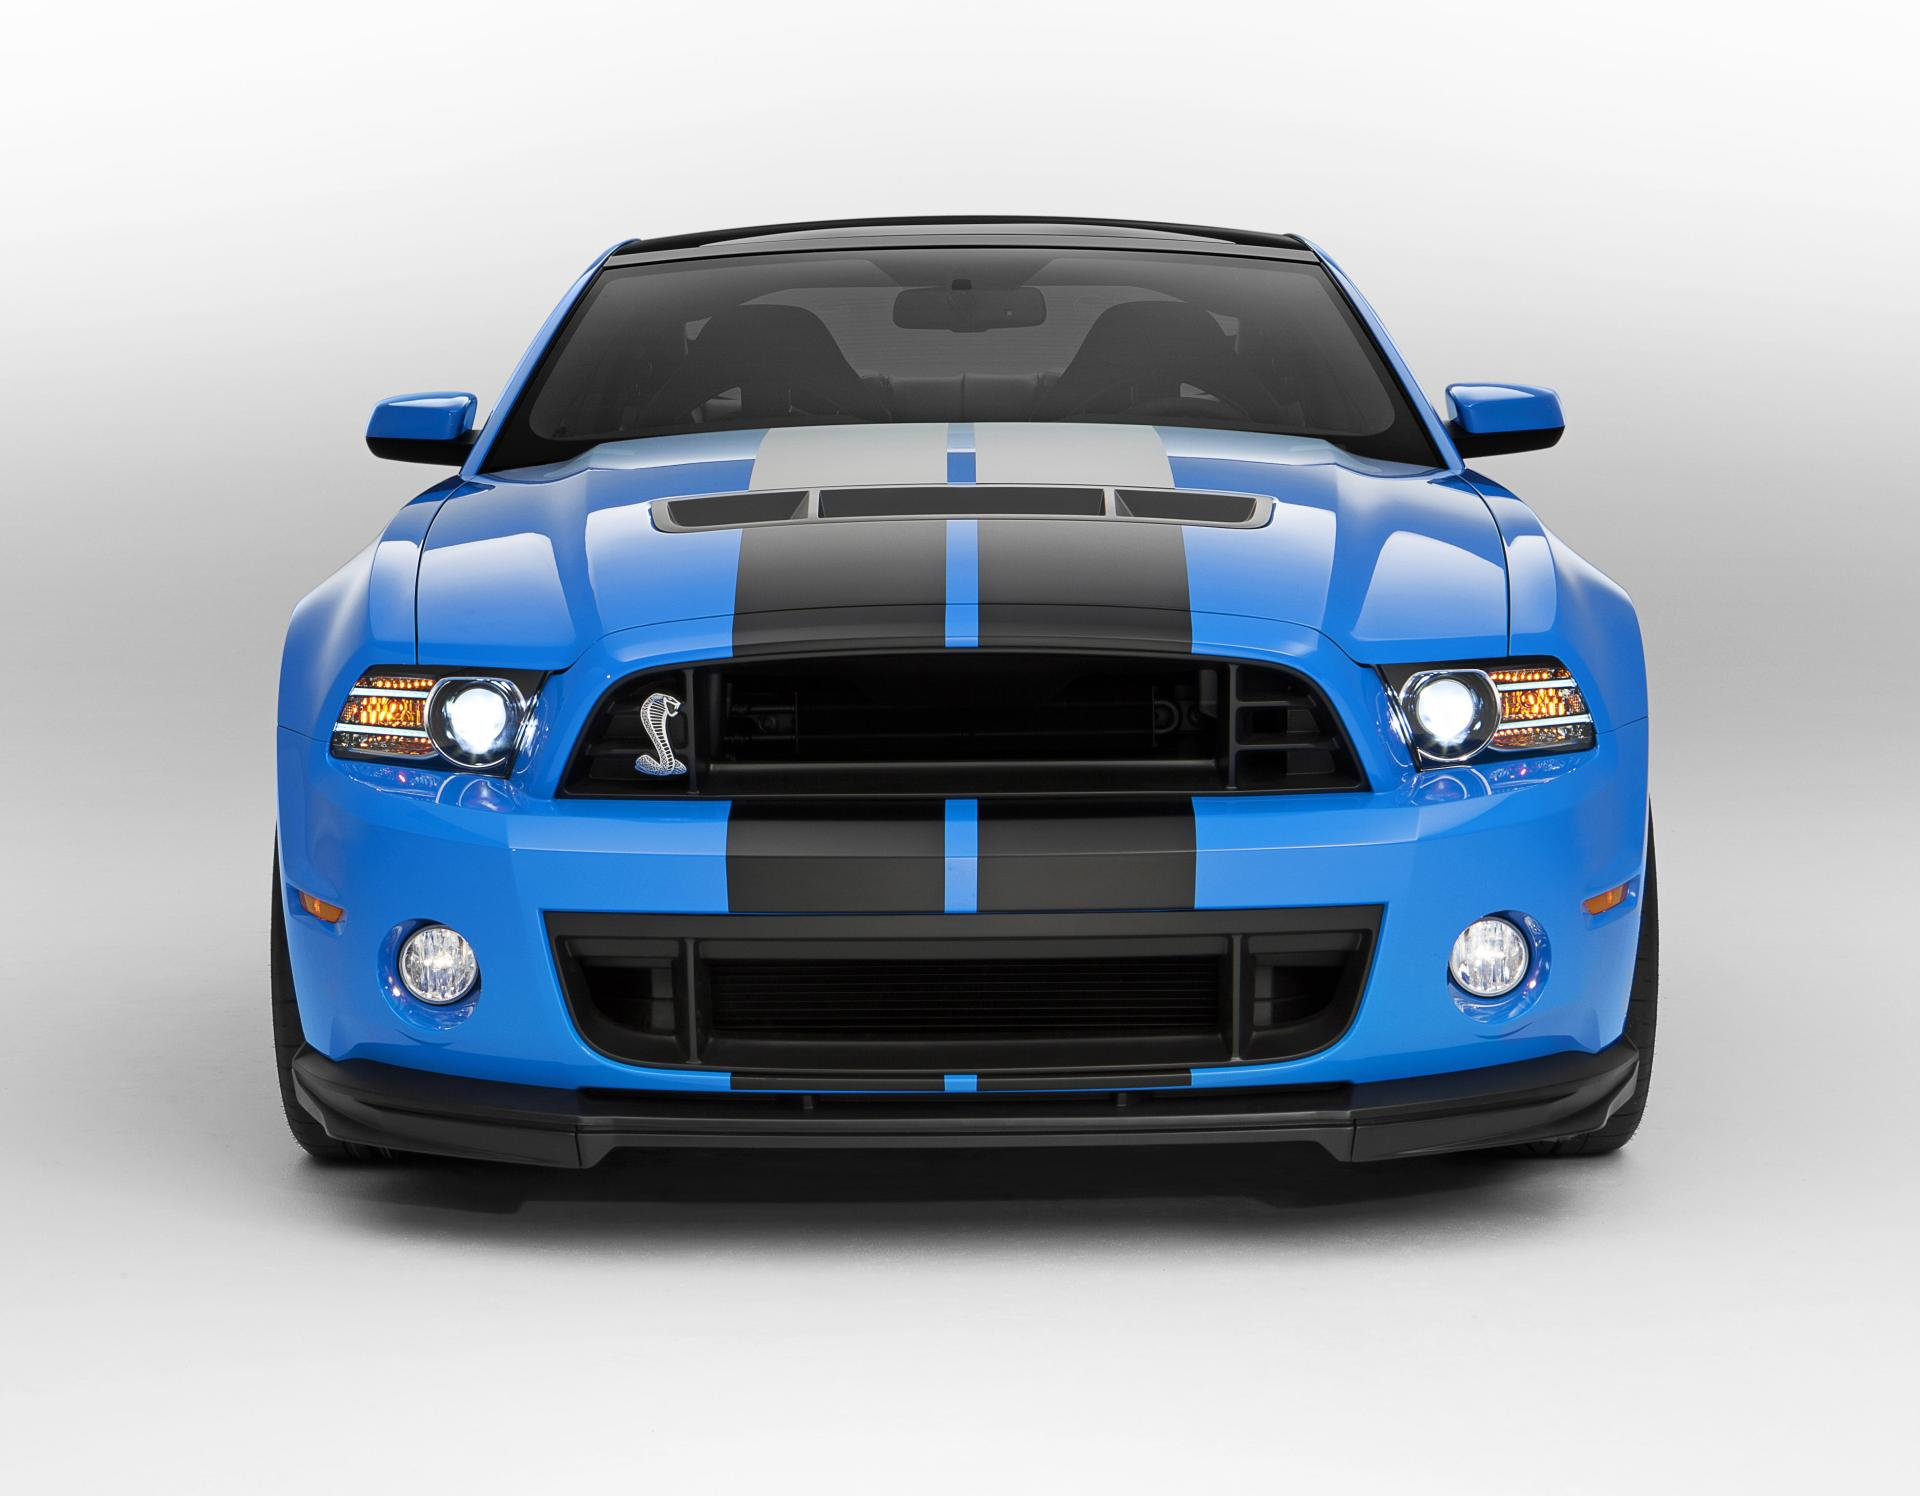 2013 Shelby Mustang GT500 Image